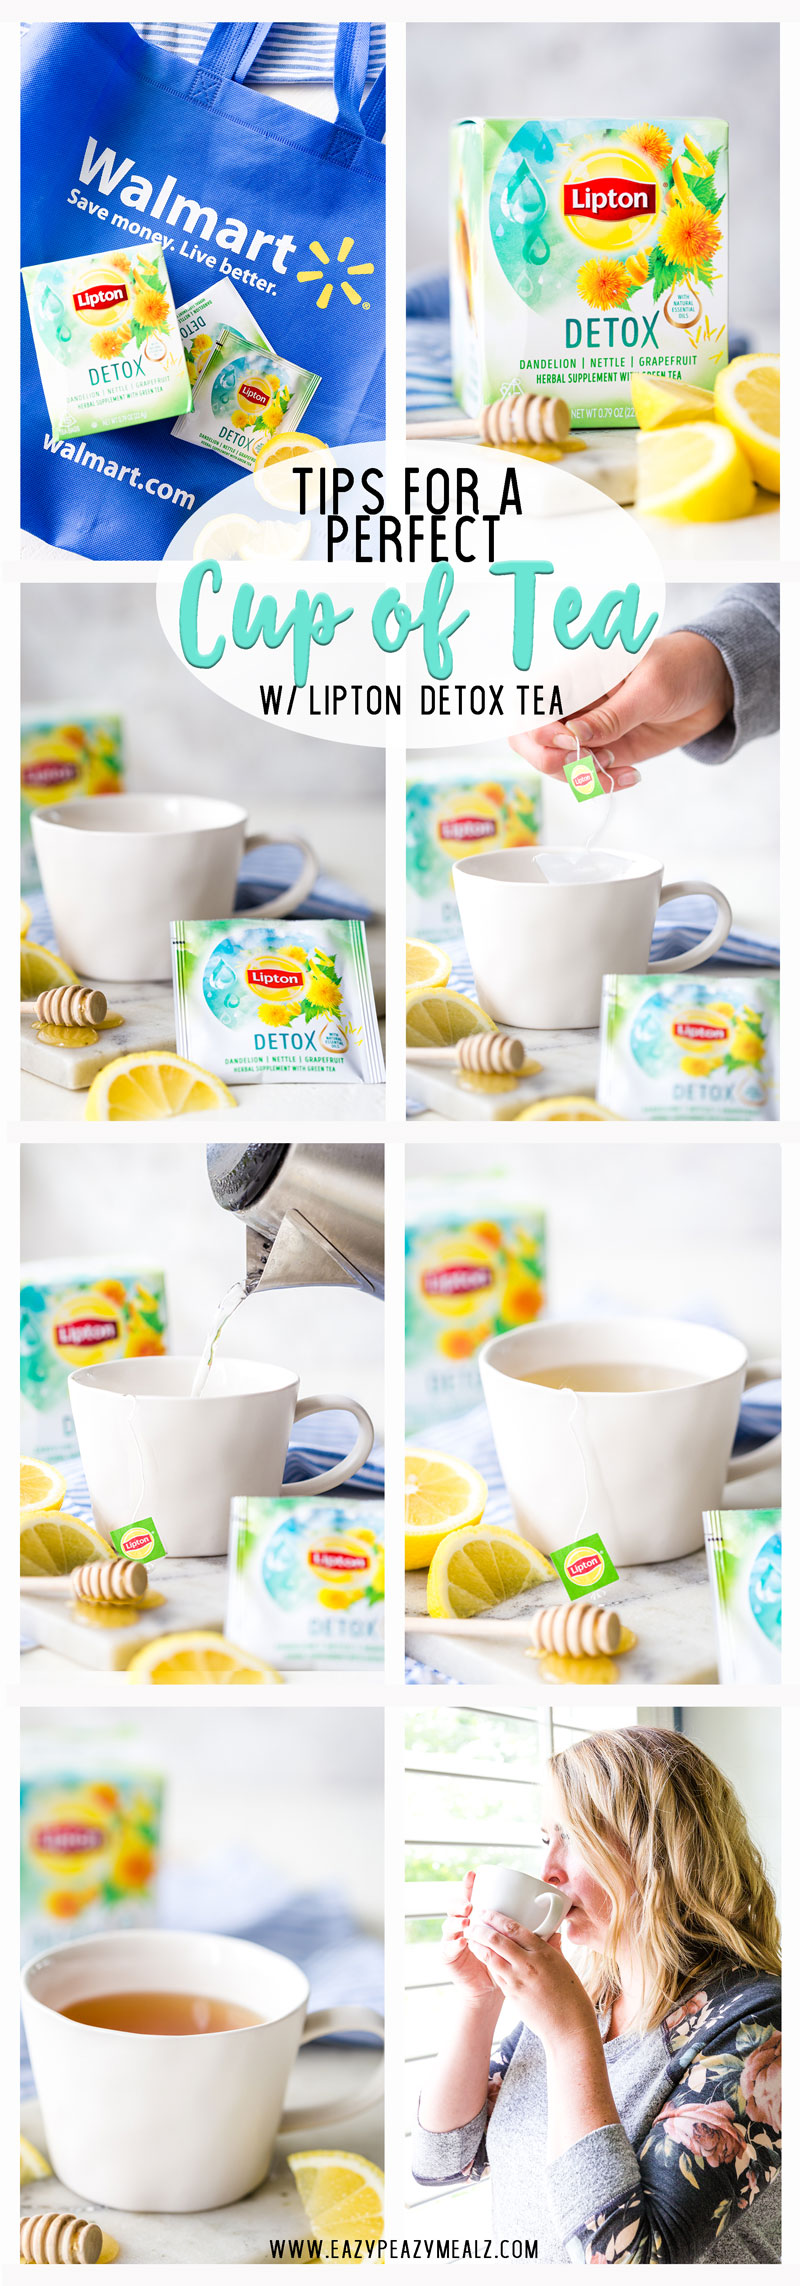 How to brew a perfect cup of tea with lipton herbal detox